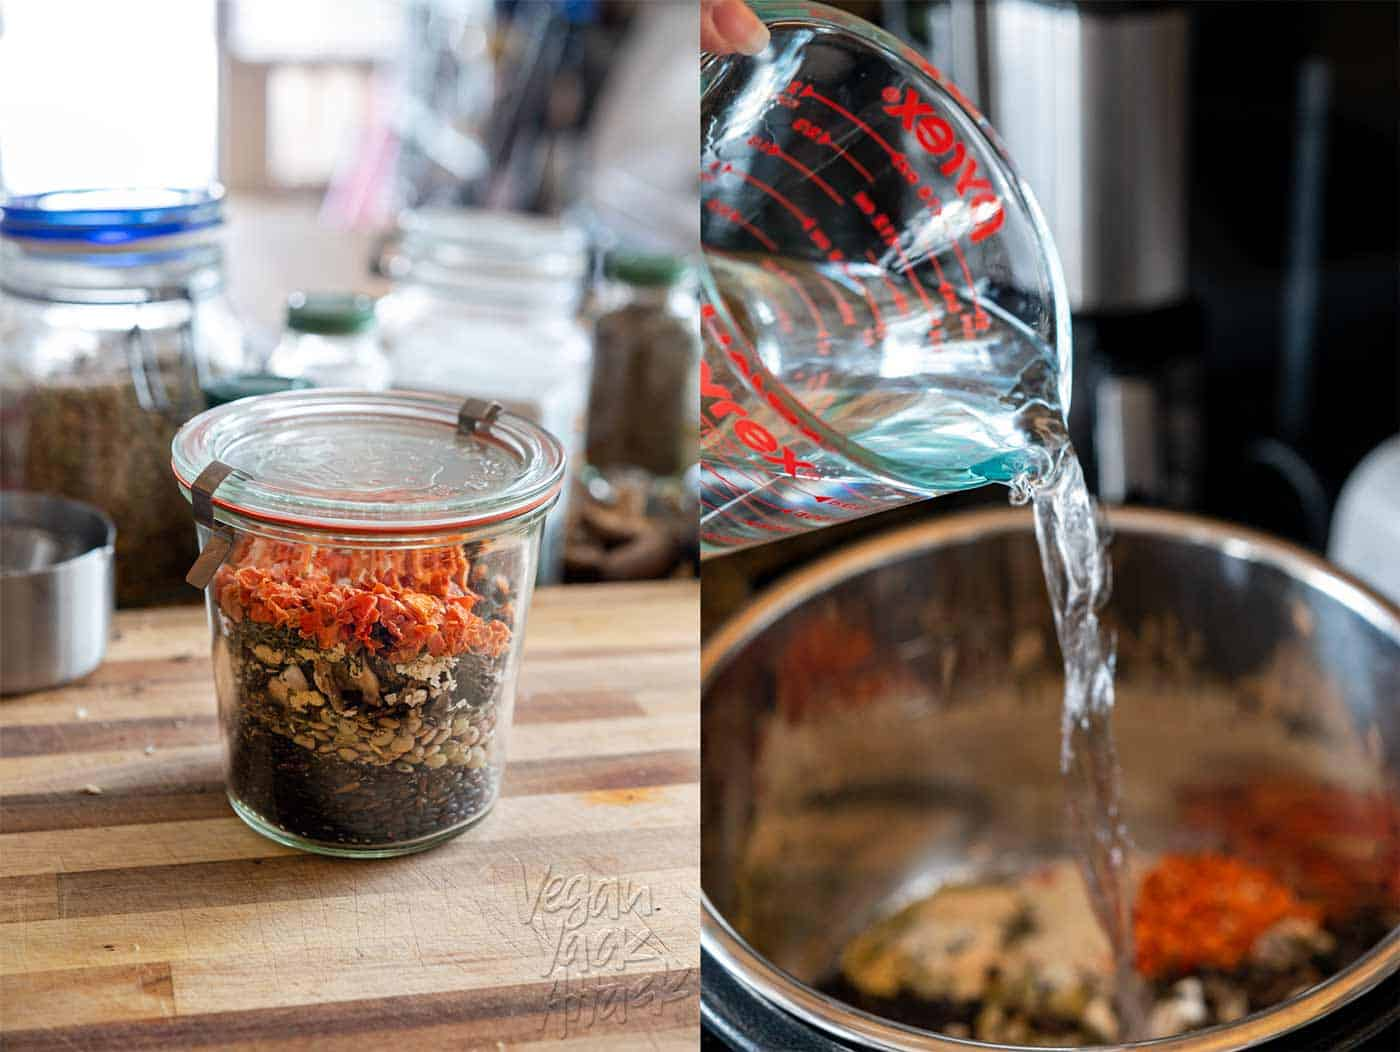 Images of assembly soup mix and water pouring into a pot